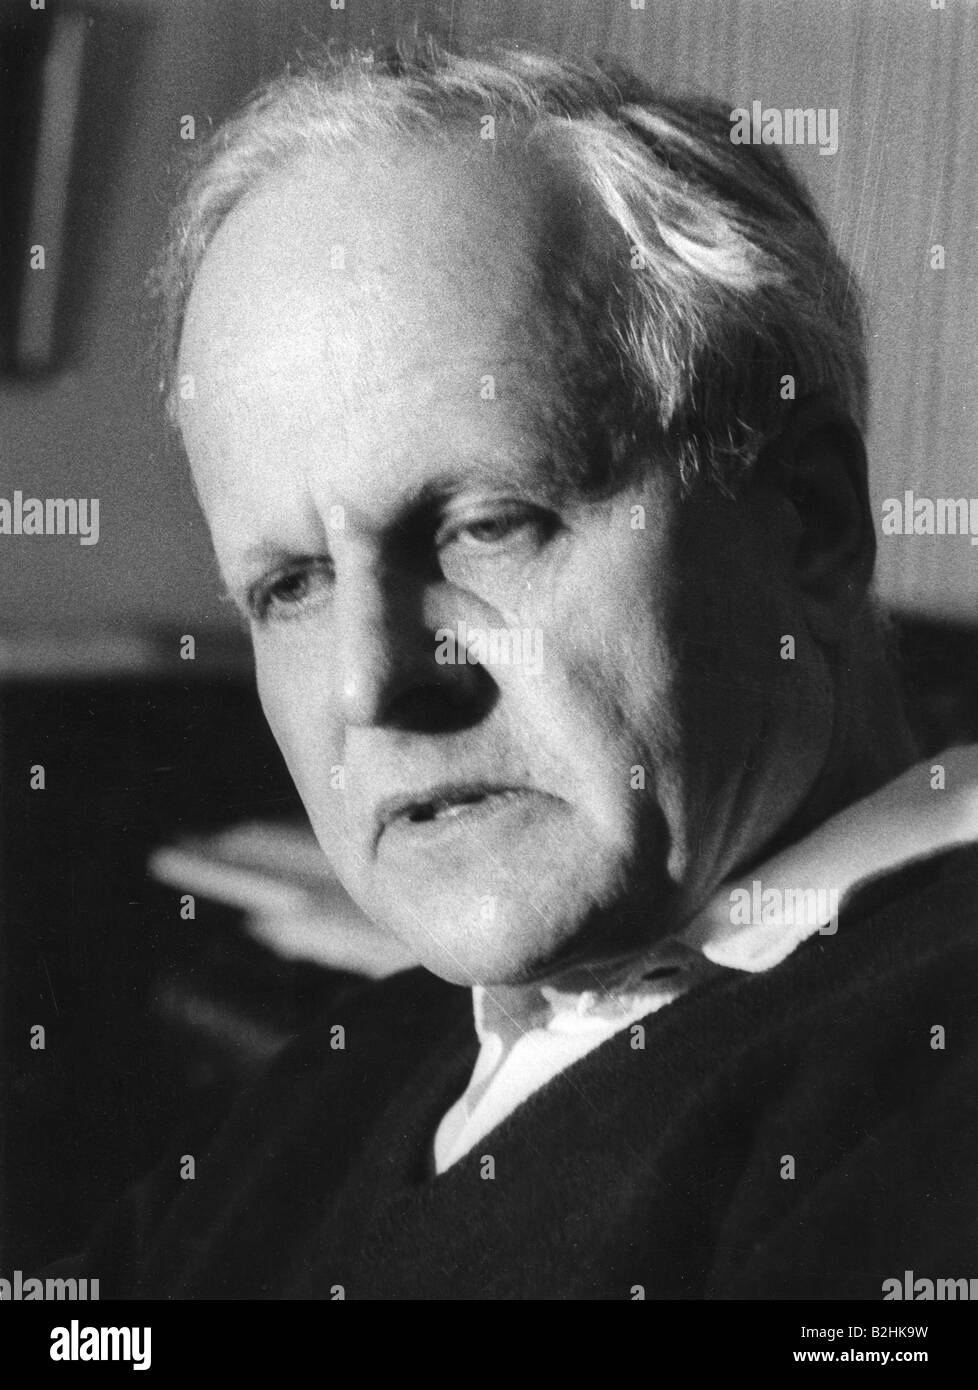 Weizsäcker, Carl Friedrich von, 28.6.1912 - 28.4.2007, German scientist (physics) and philosopher, portrait, - Stock Image